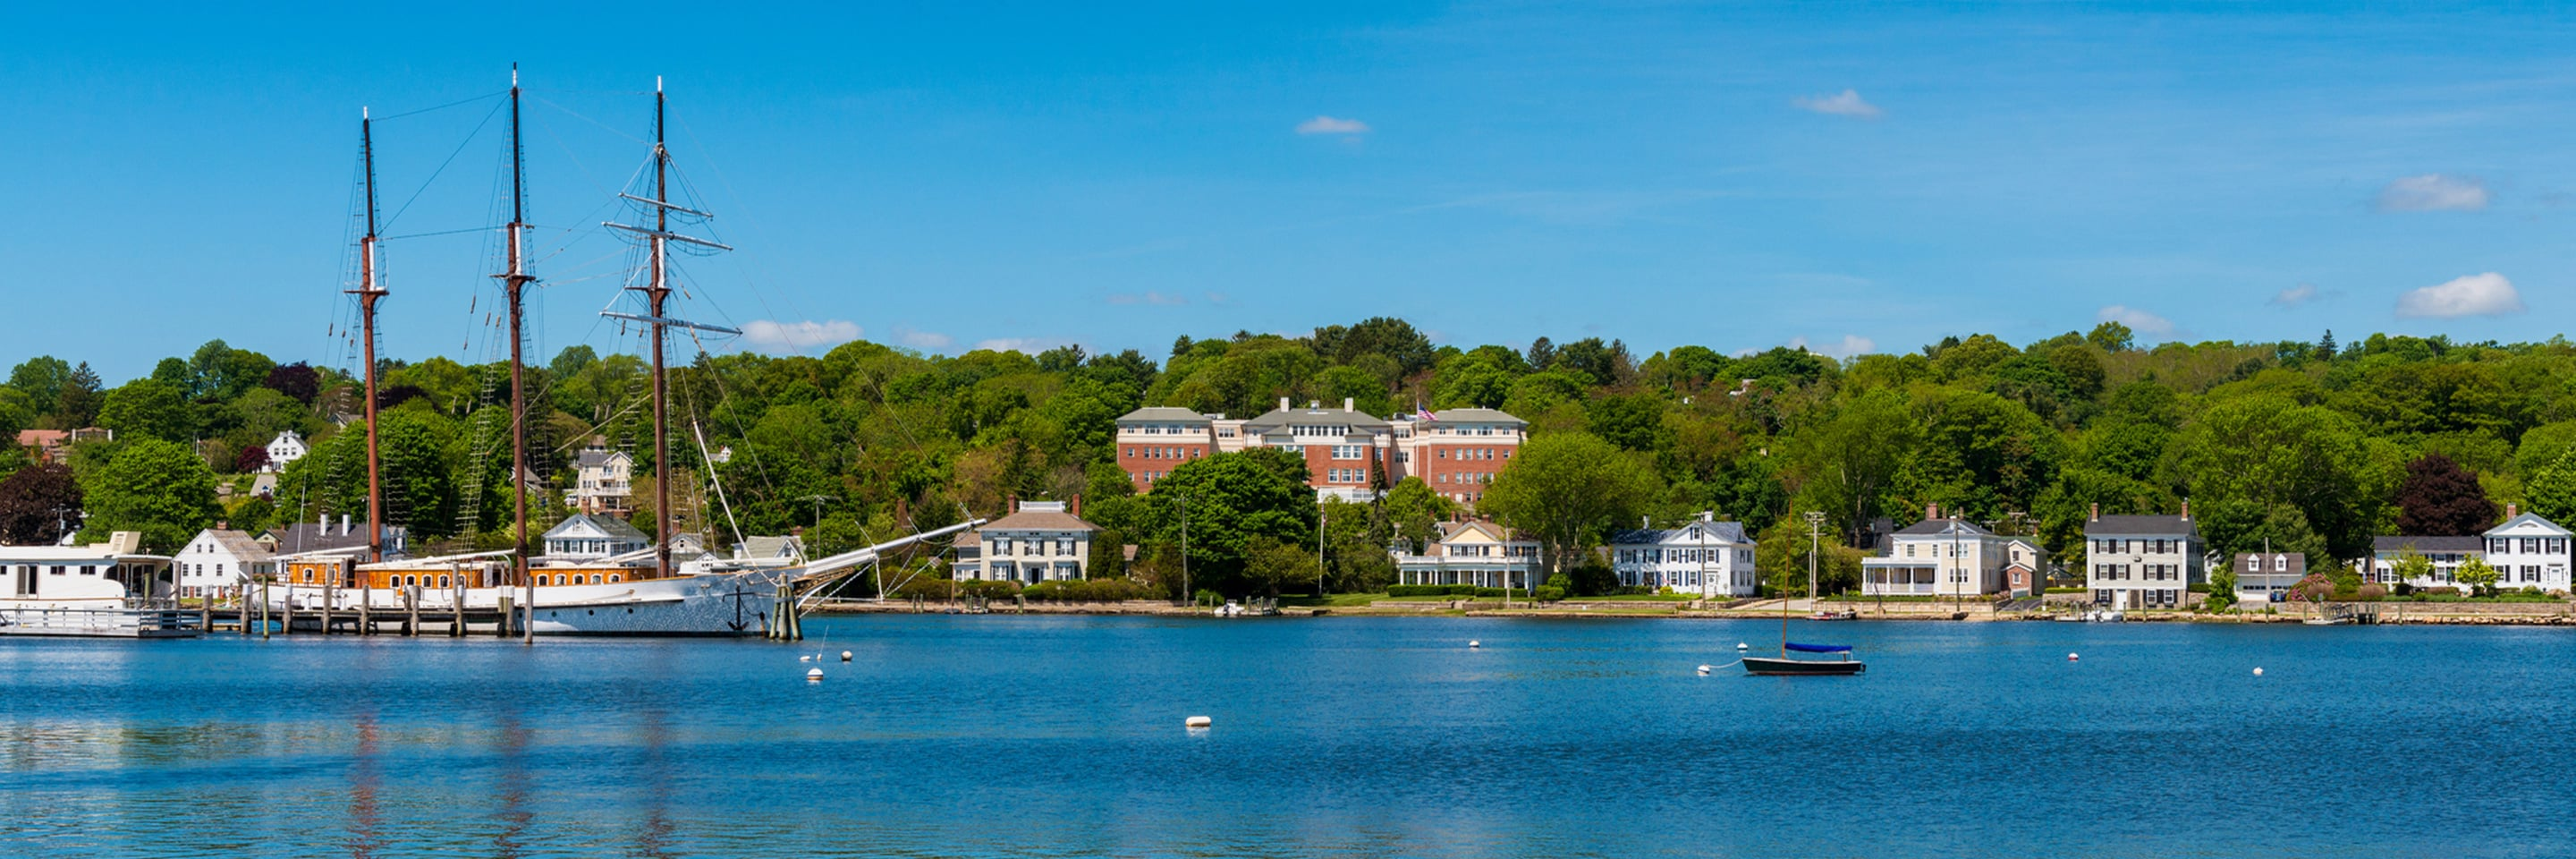 Hotels in Mystic